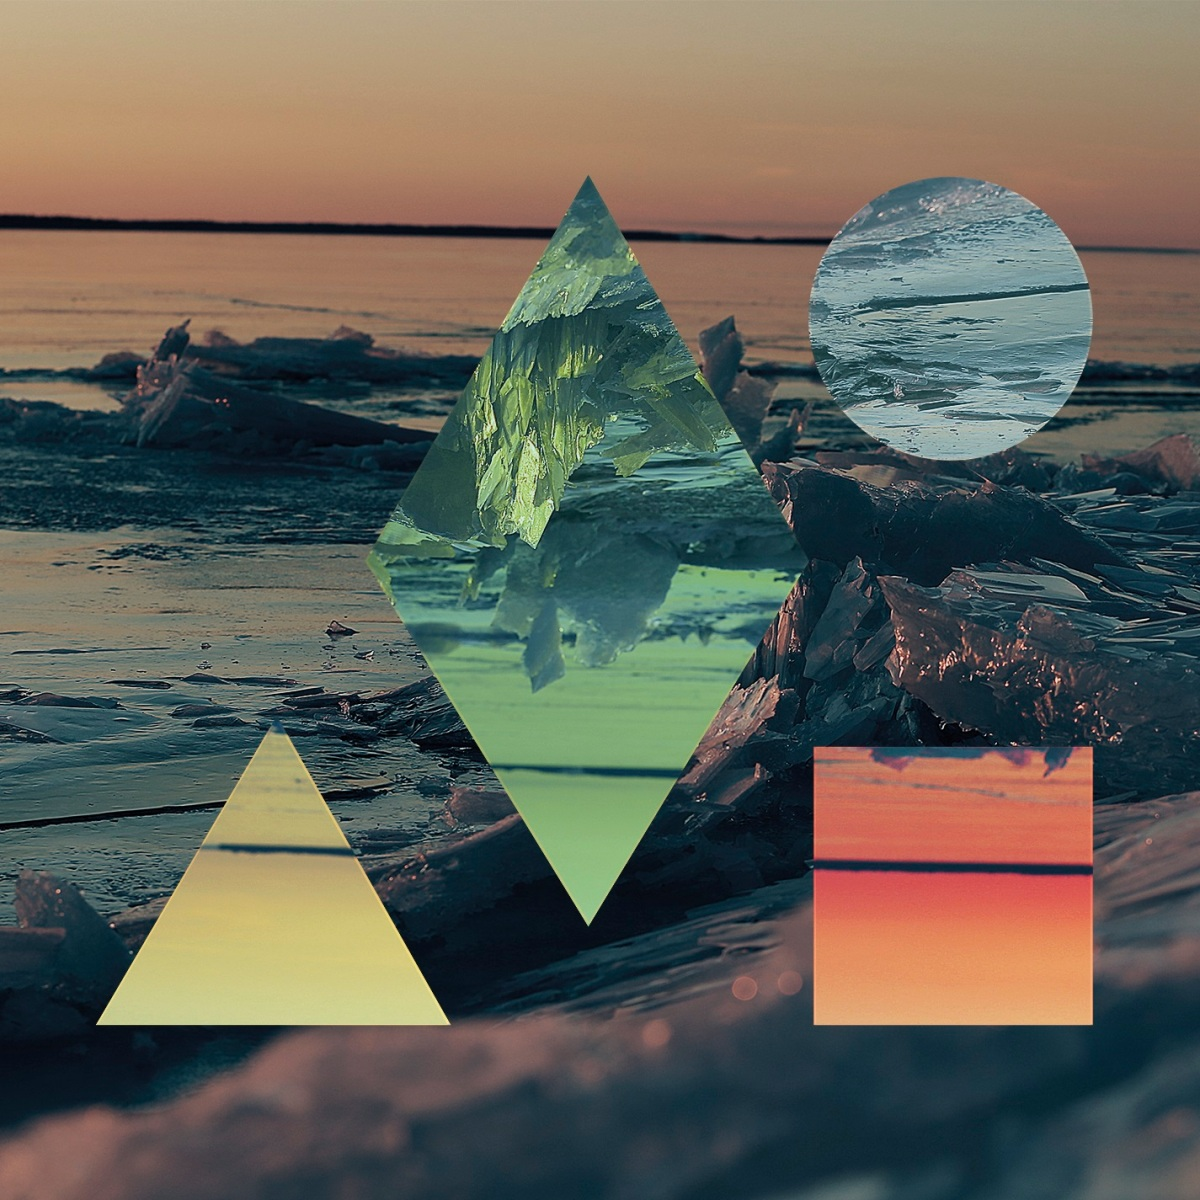 Clean Bandit - Rather Be feat. Jess Glynne